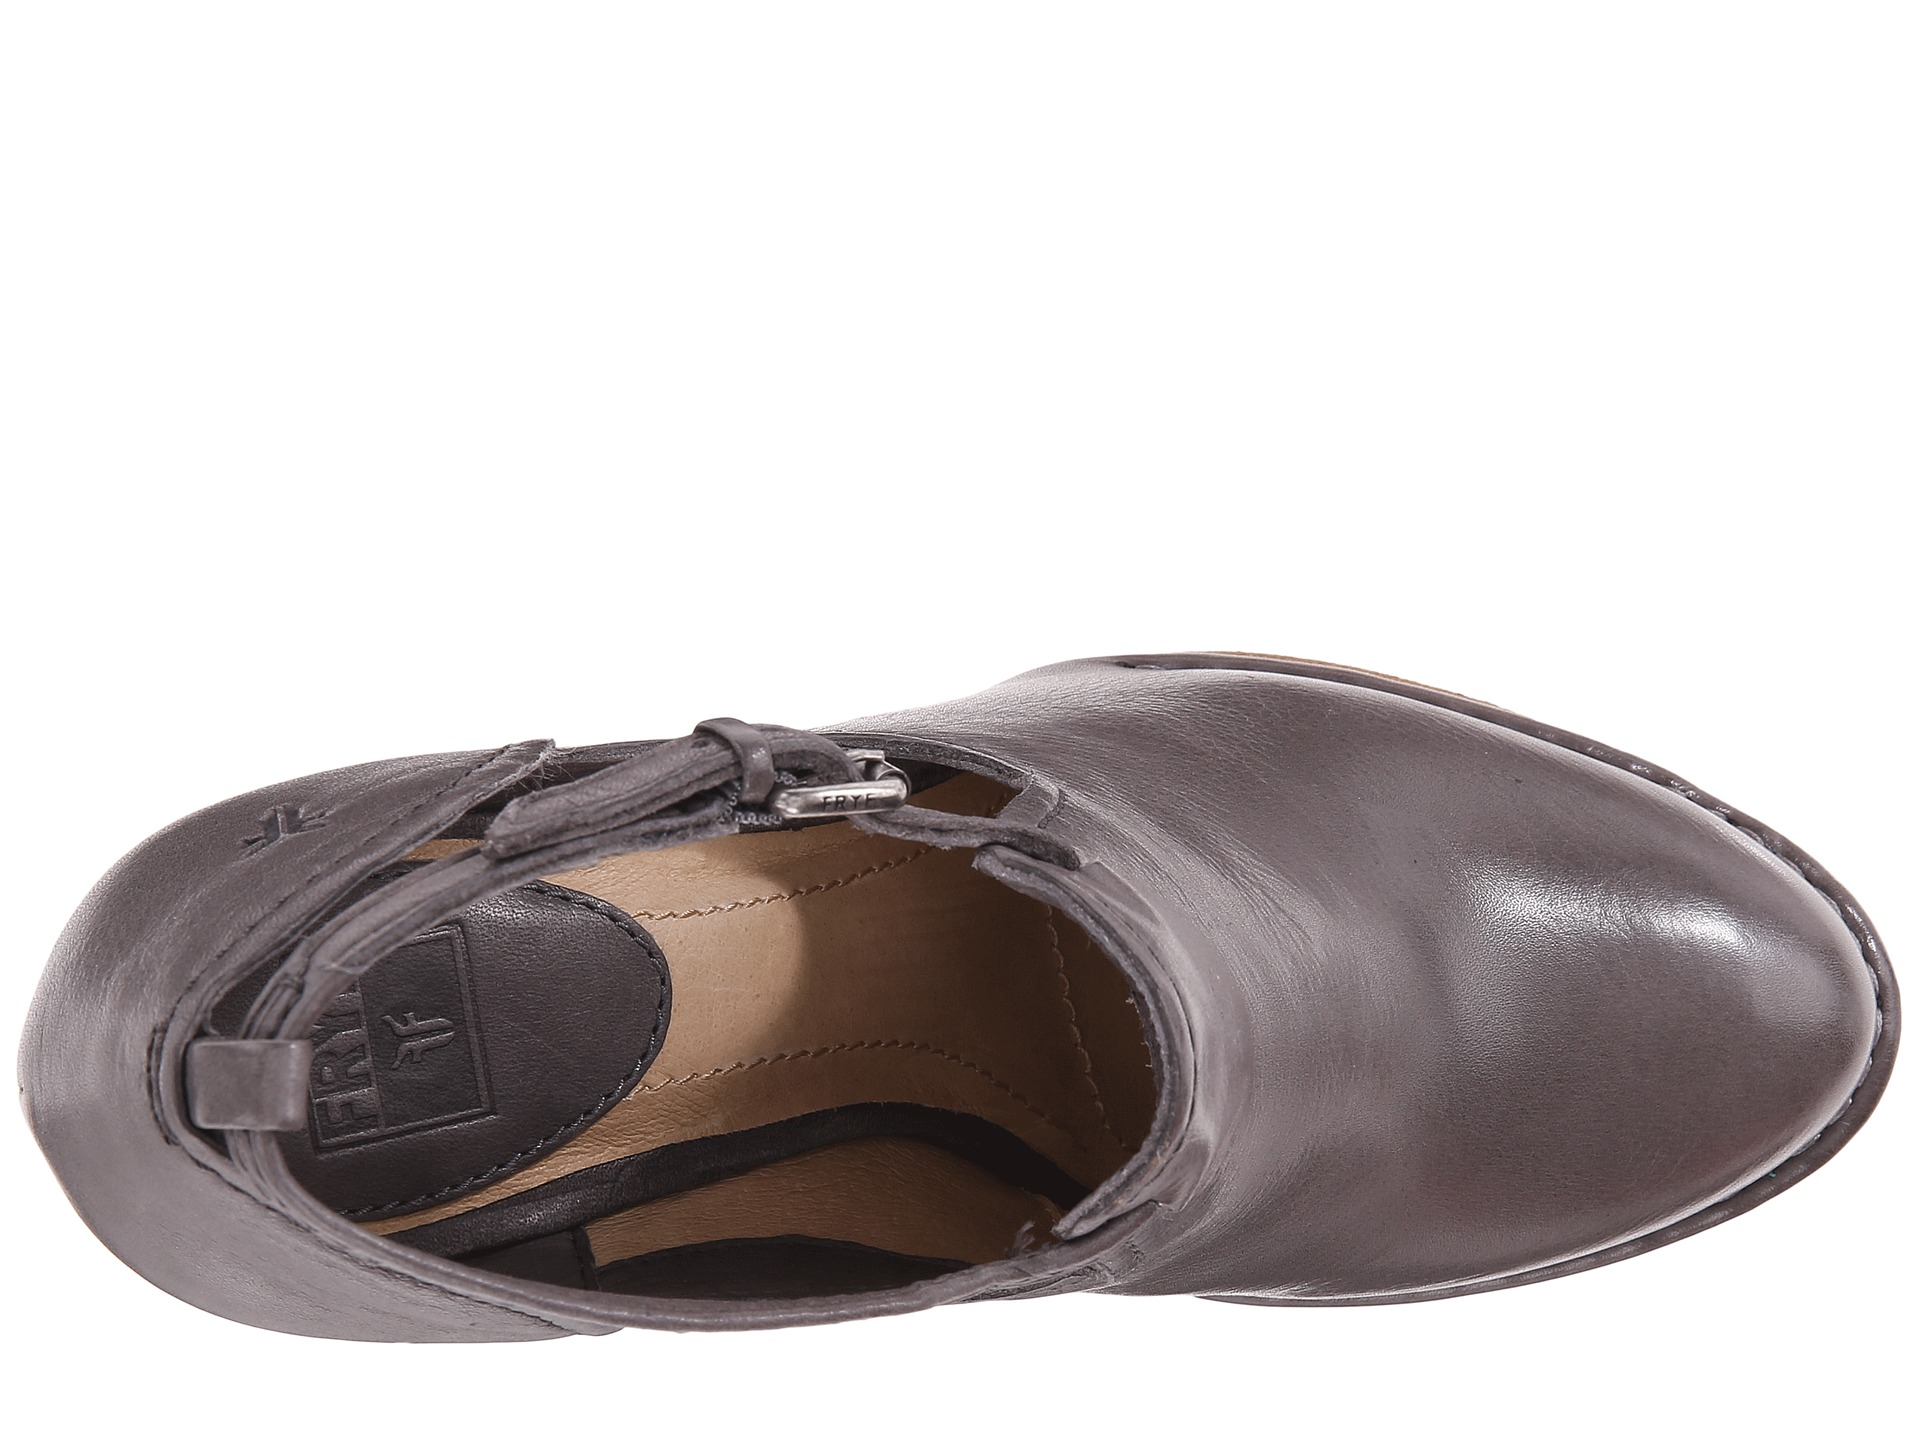 Frye Margaret Shootie Charcoal Vintage Leather Zappos